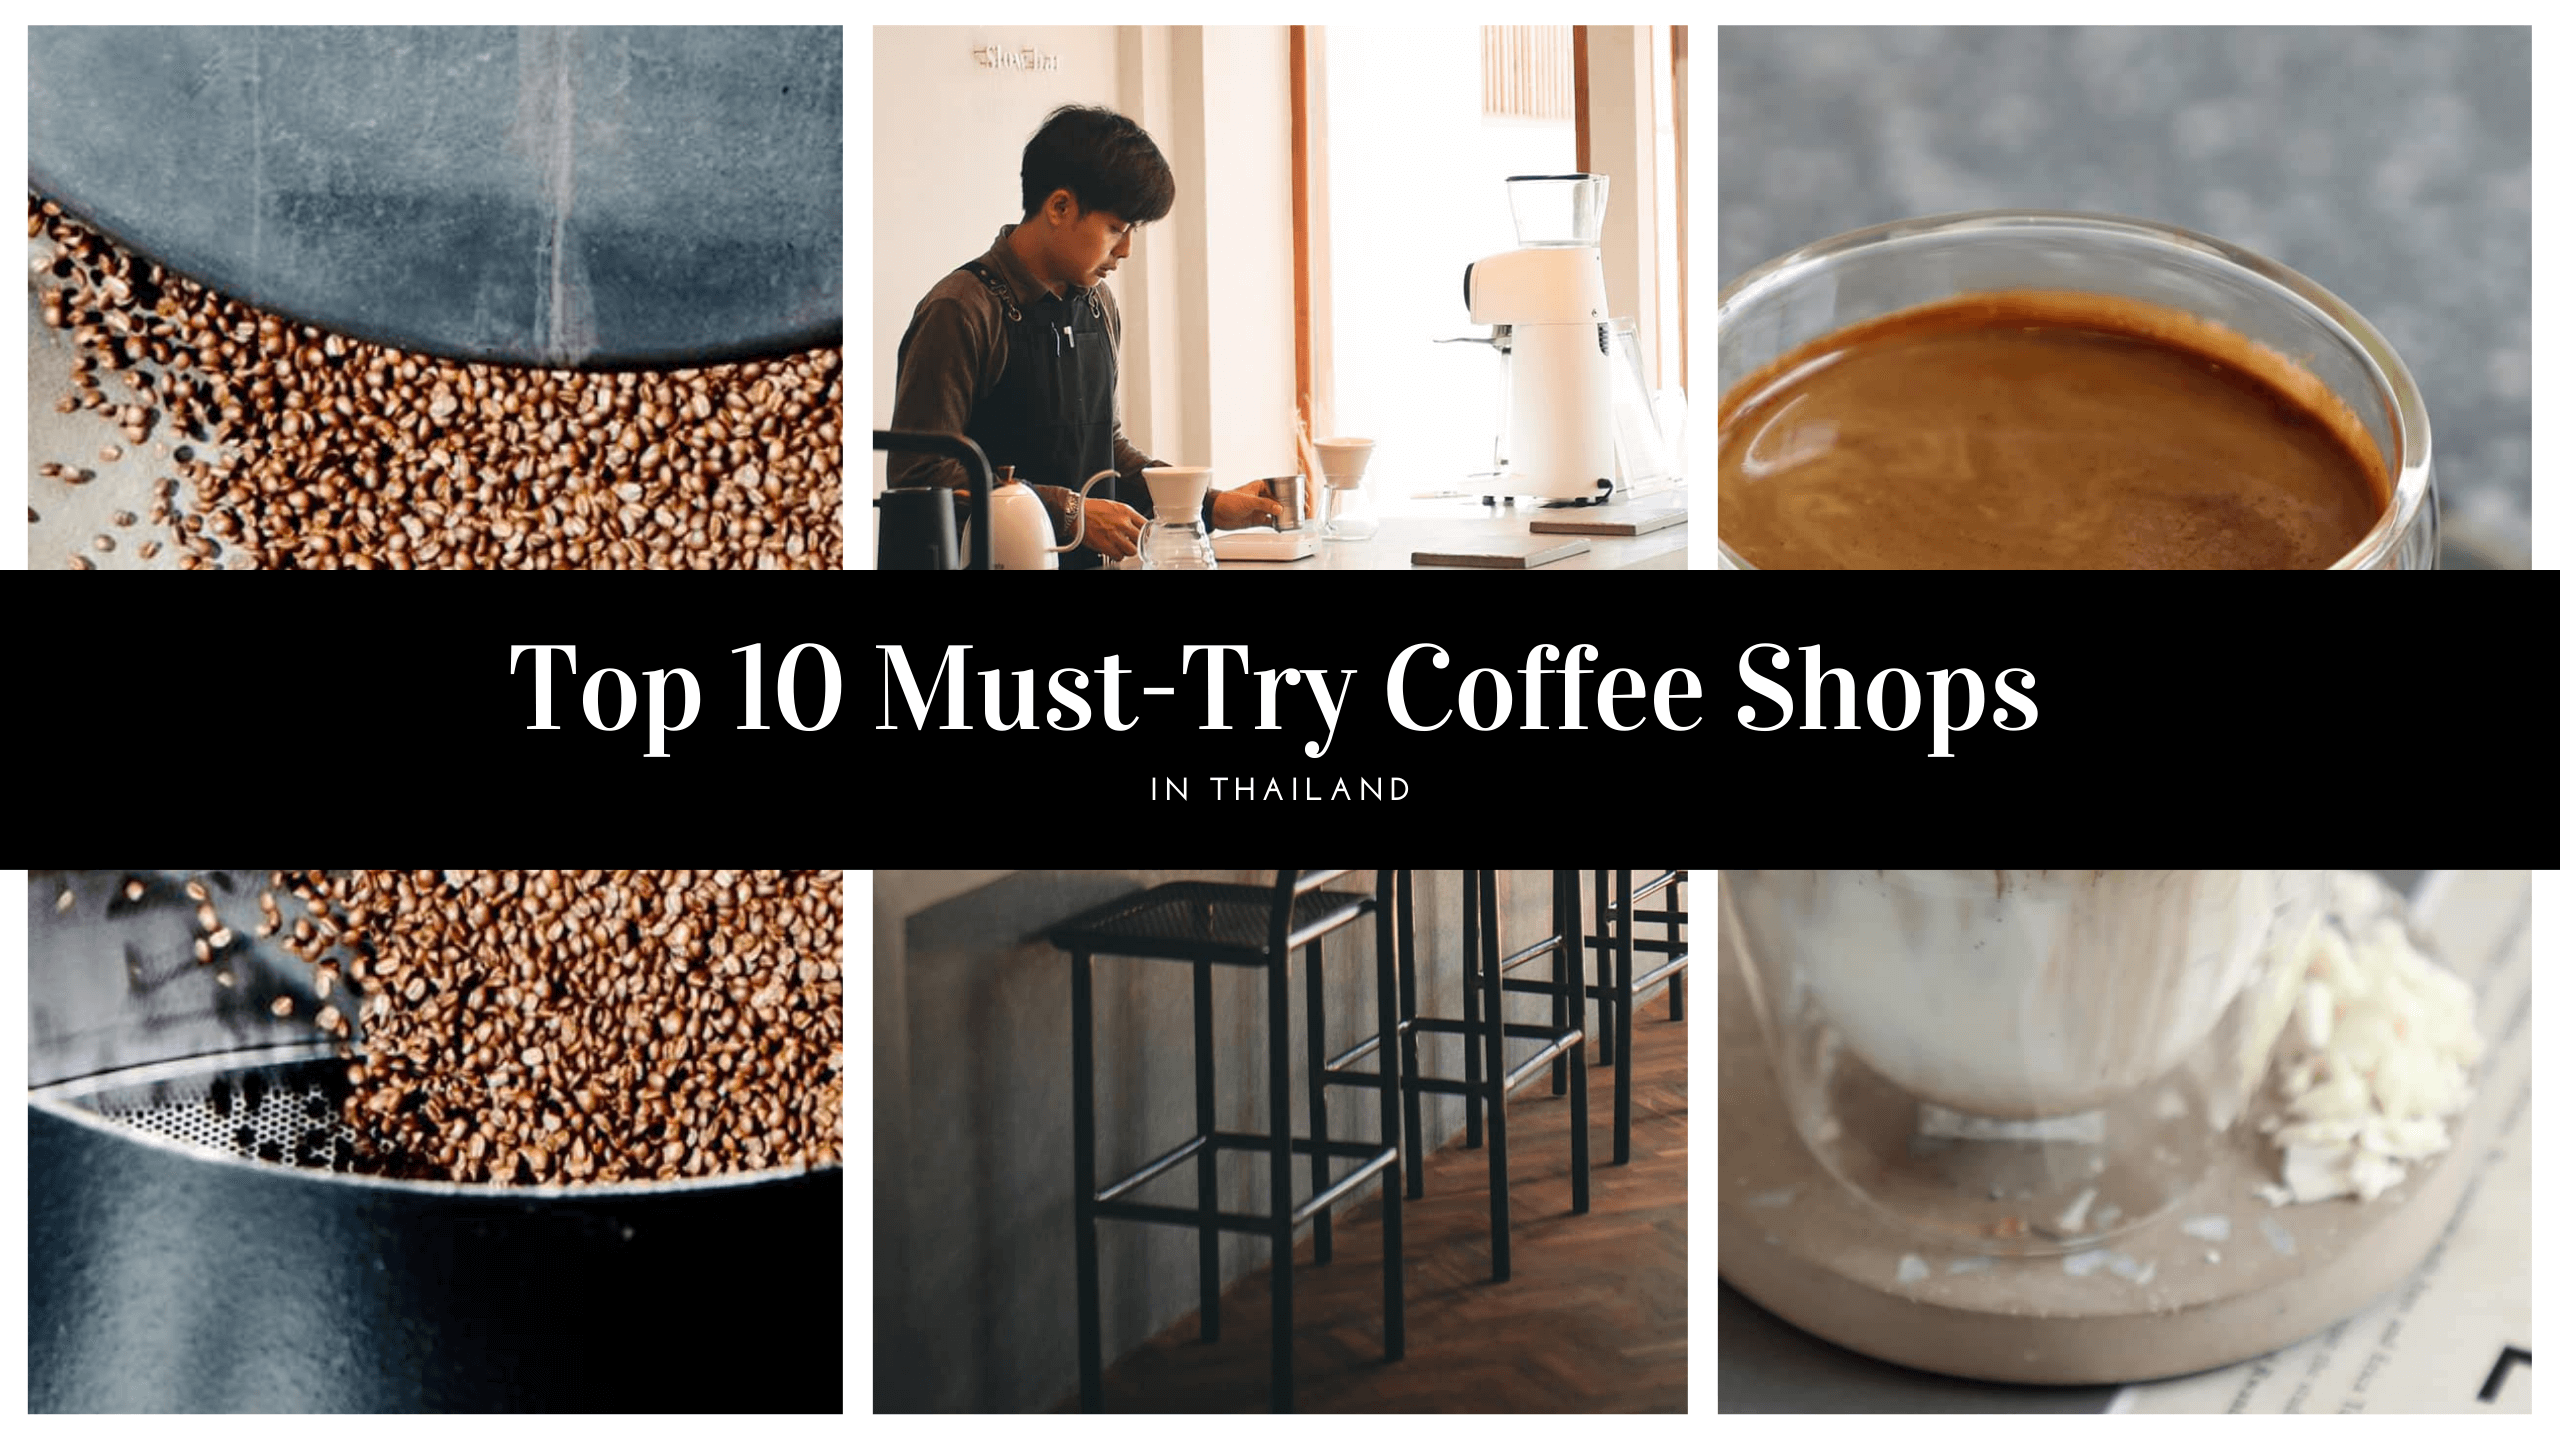 Top 10 Coffee Shops In Thailand You Must Try - Coffee Culture Thailand